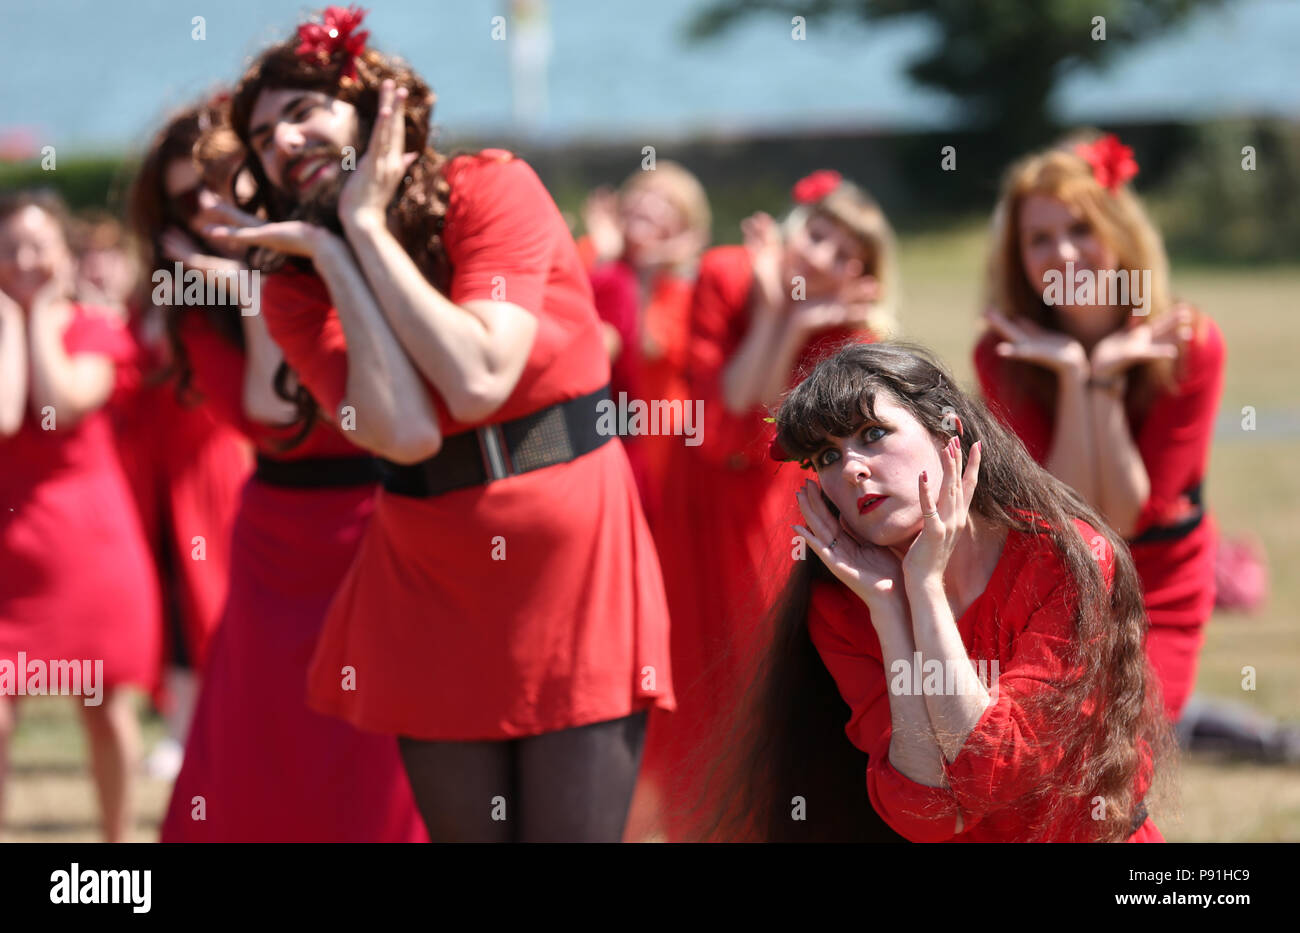 Dublin, Ireland. 14th July 2018. Participants in this year's Wuthering Heights Day rehearse their dance to Kate Bush's iconic song and video of 'Wuthering Heights' at St Anne's Park in Dublin, Ireland.  Credit : Laura Hutton/Alamy Live News. Stock Photo